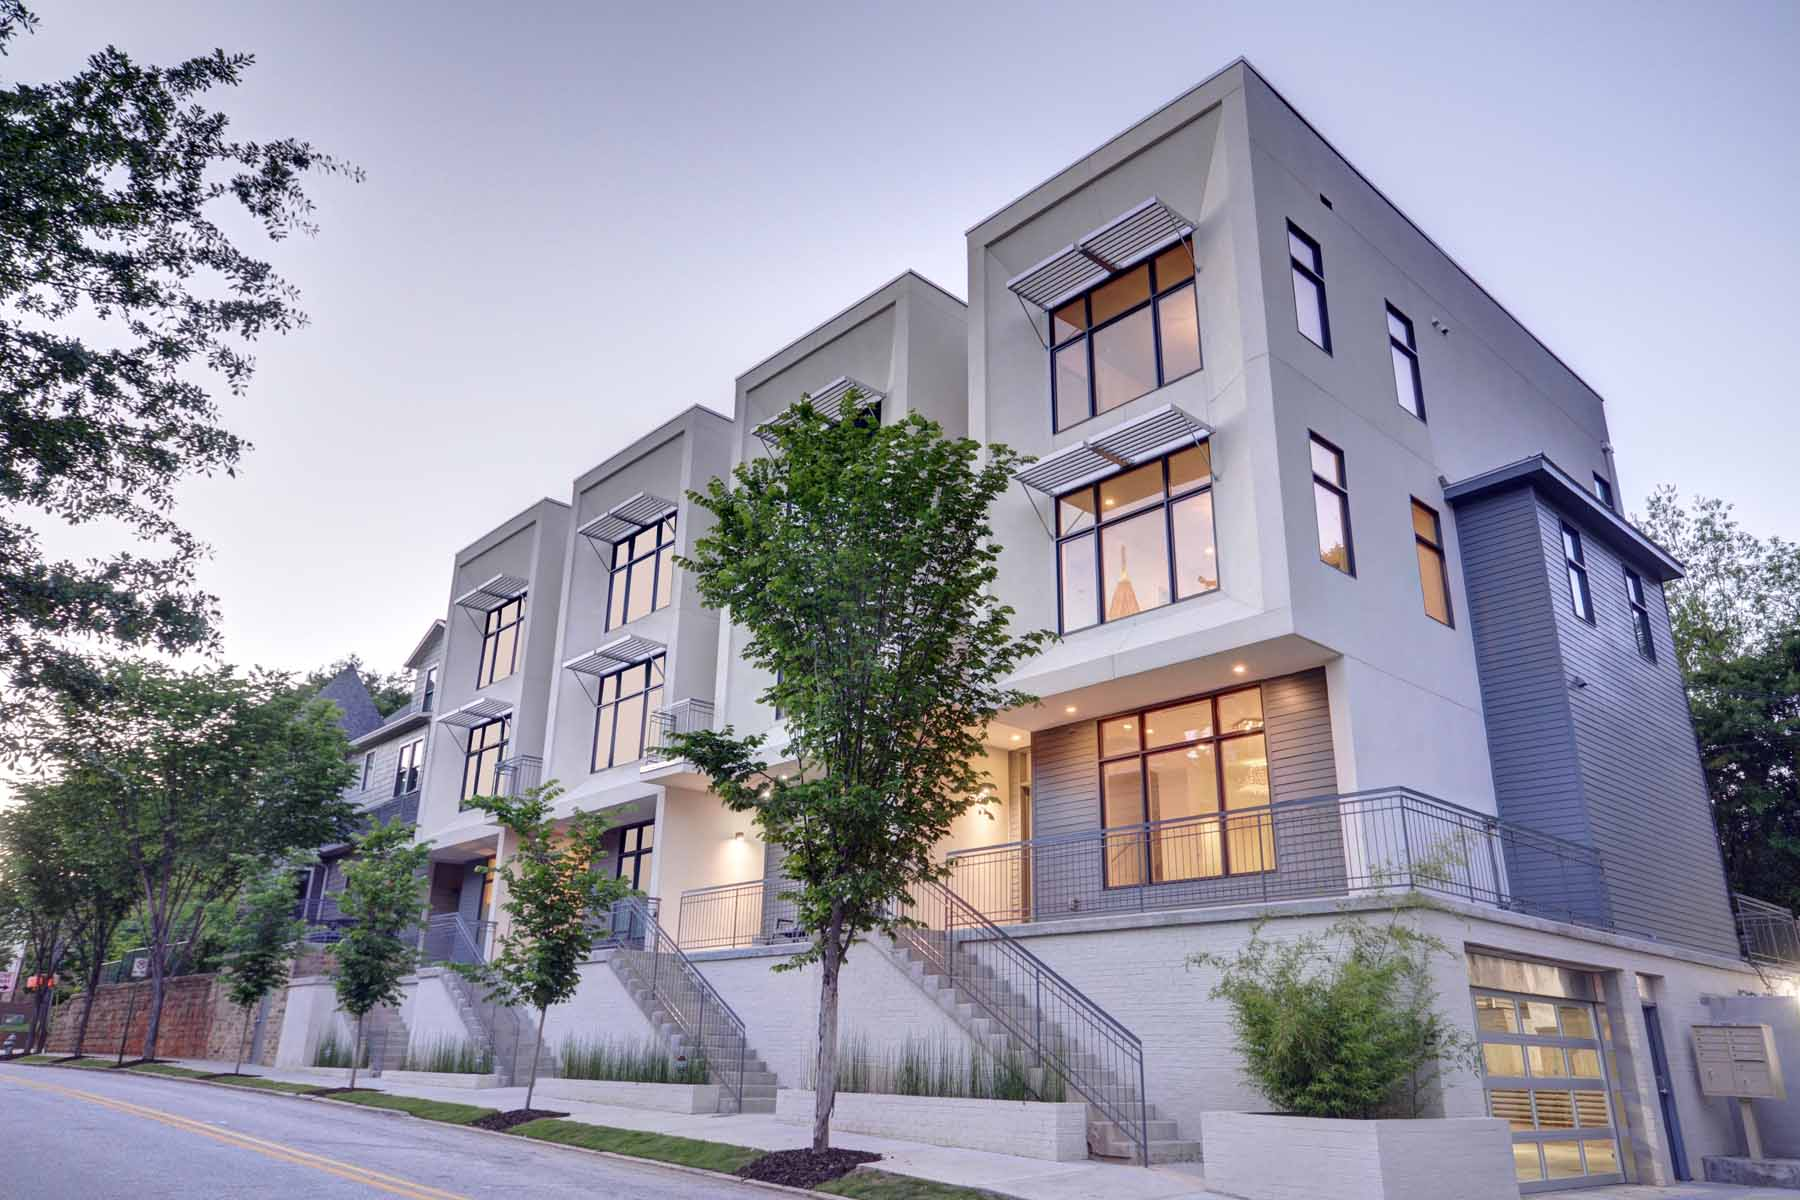 Townhouse for Sale at Midtown Modern Townhome with a Private Rooftop Terrace 785 Piedmont Avenue NE Unit F Midtown, Atlanta, Georgia, 30308 United States